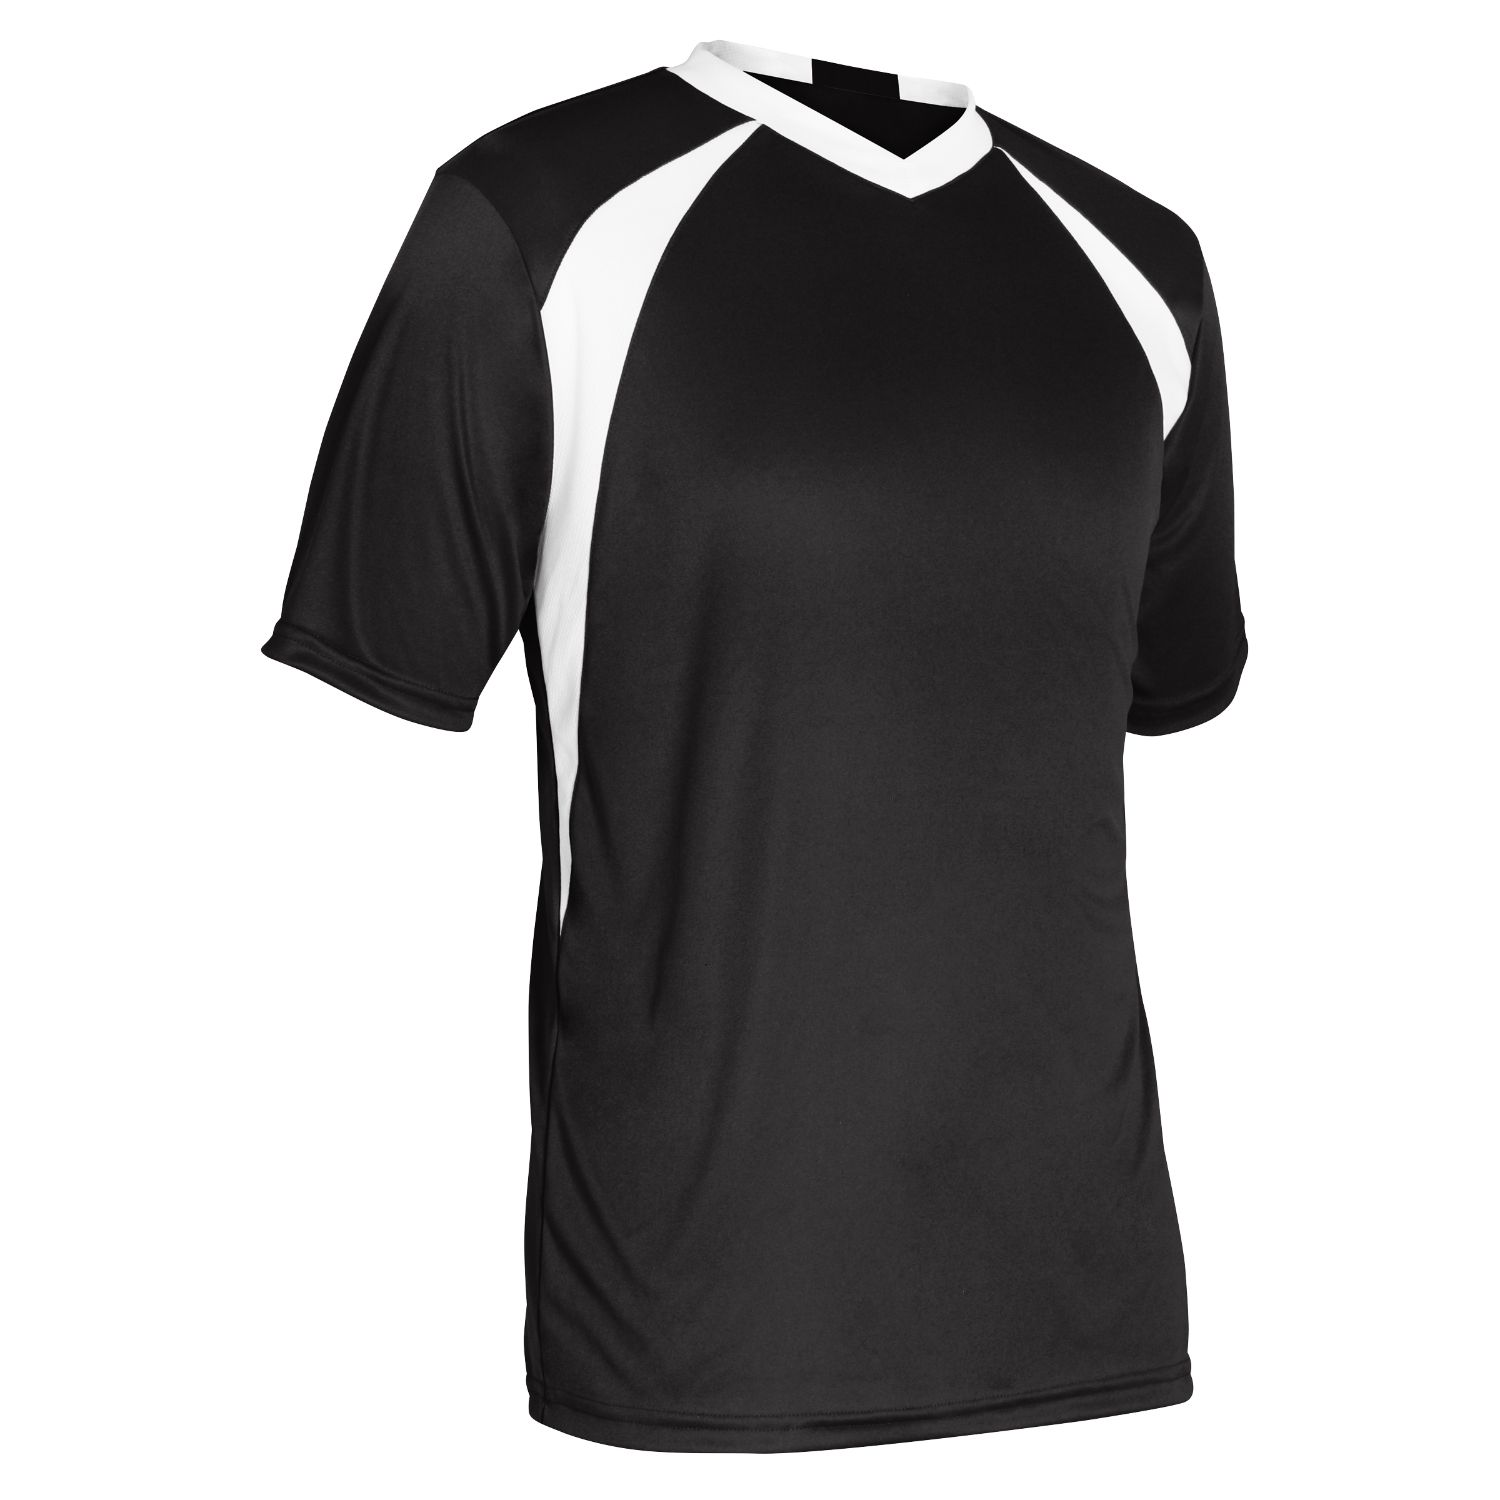 Champro Adult Sweeper Soccer Jersey Black White Extra Large